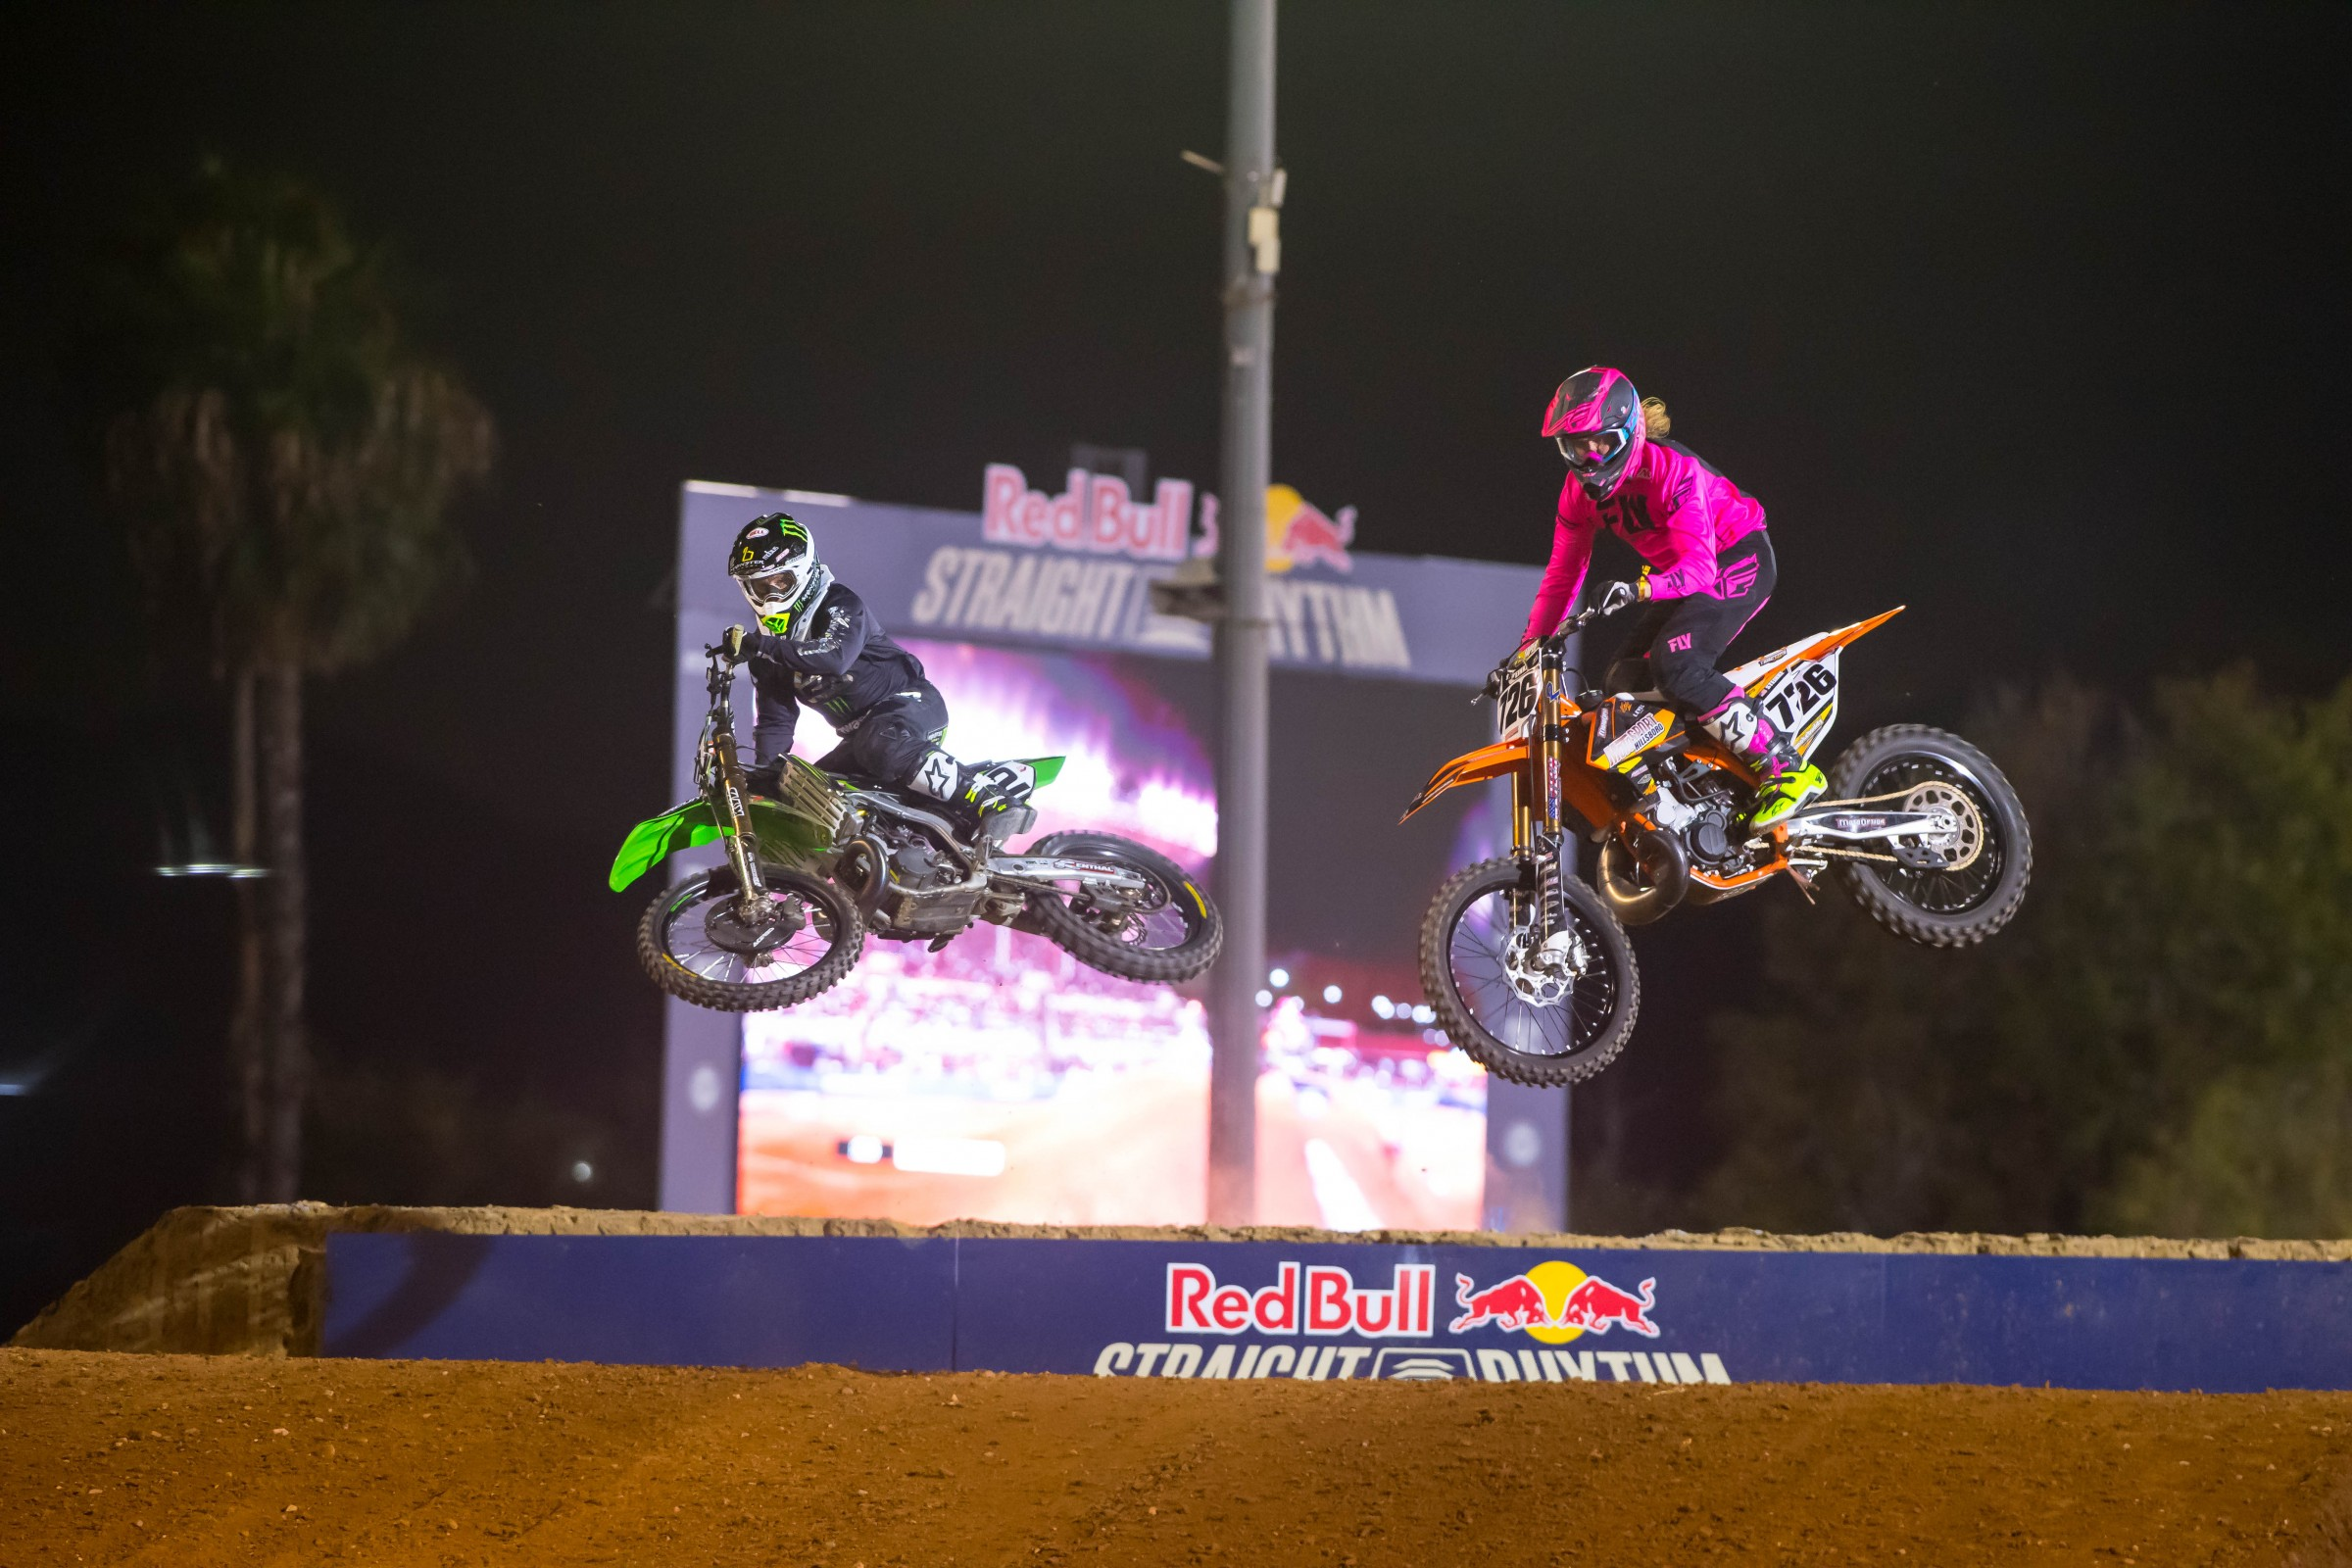 Villopoto was eliminated by Gared Steinke in the semi finals.